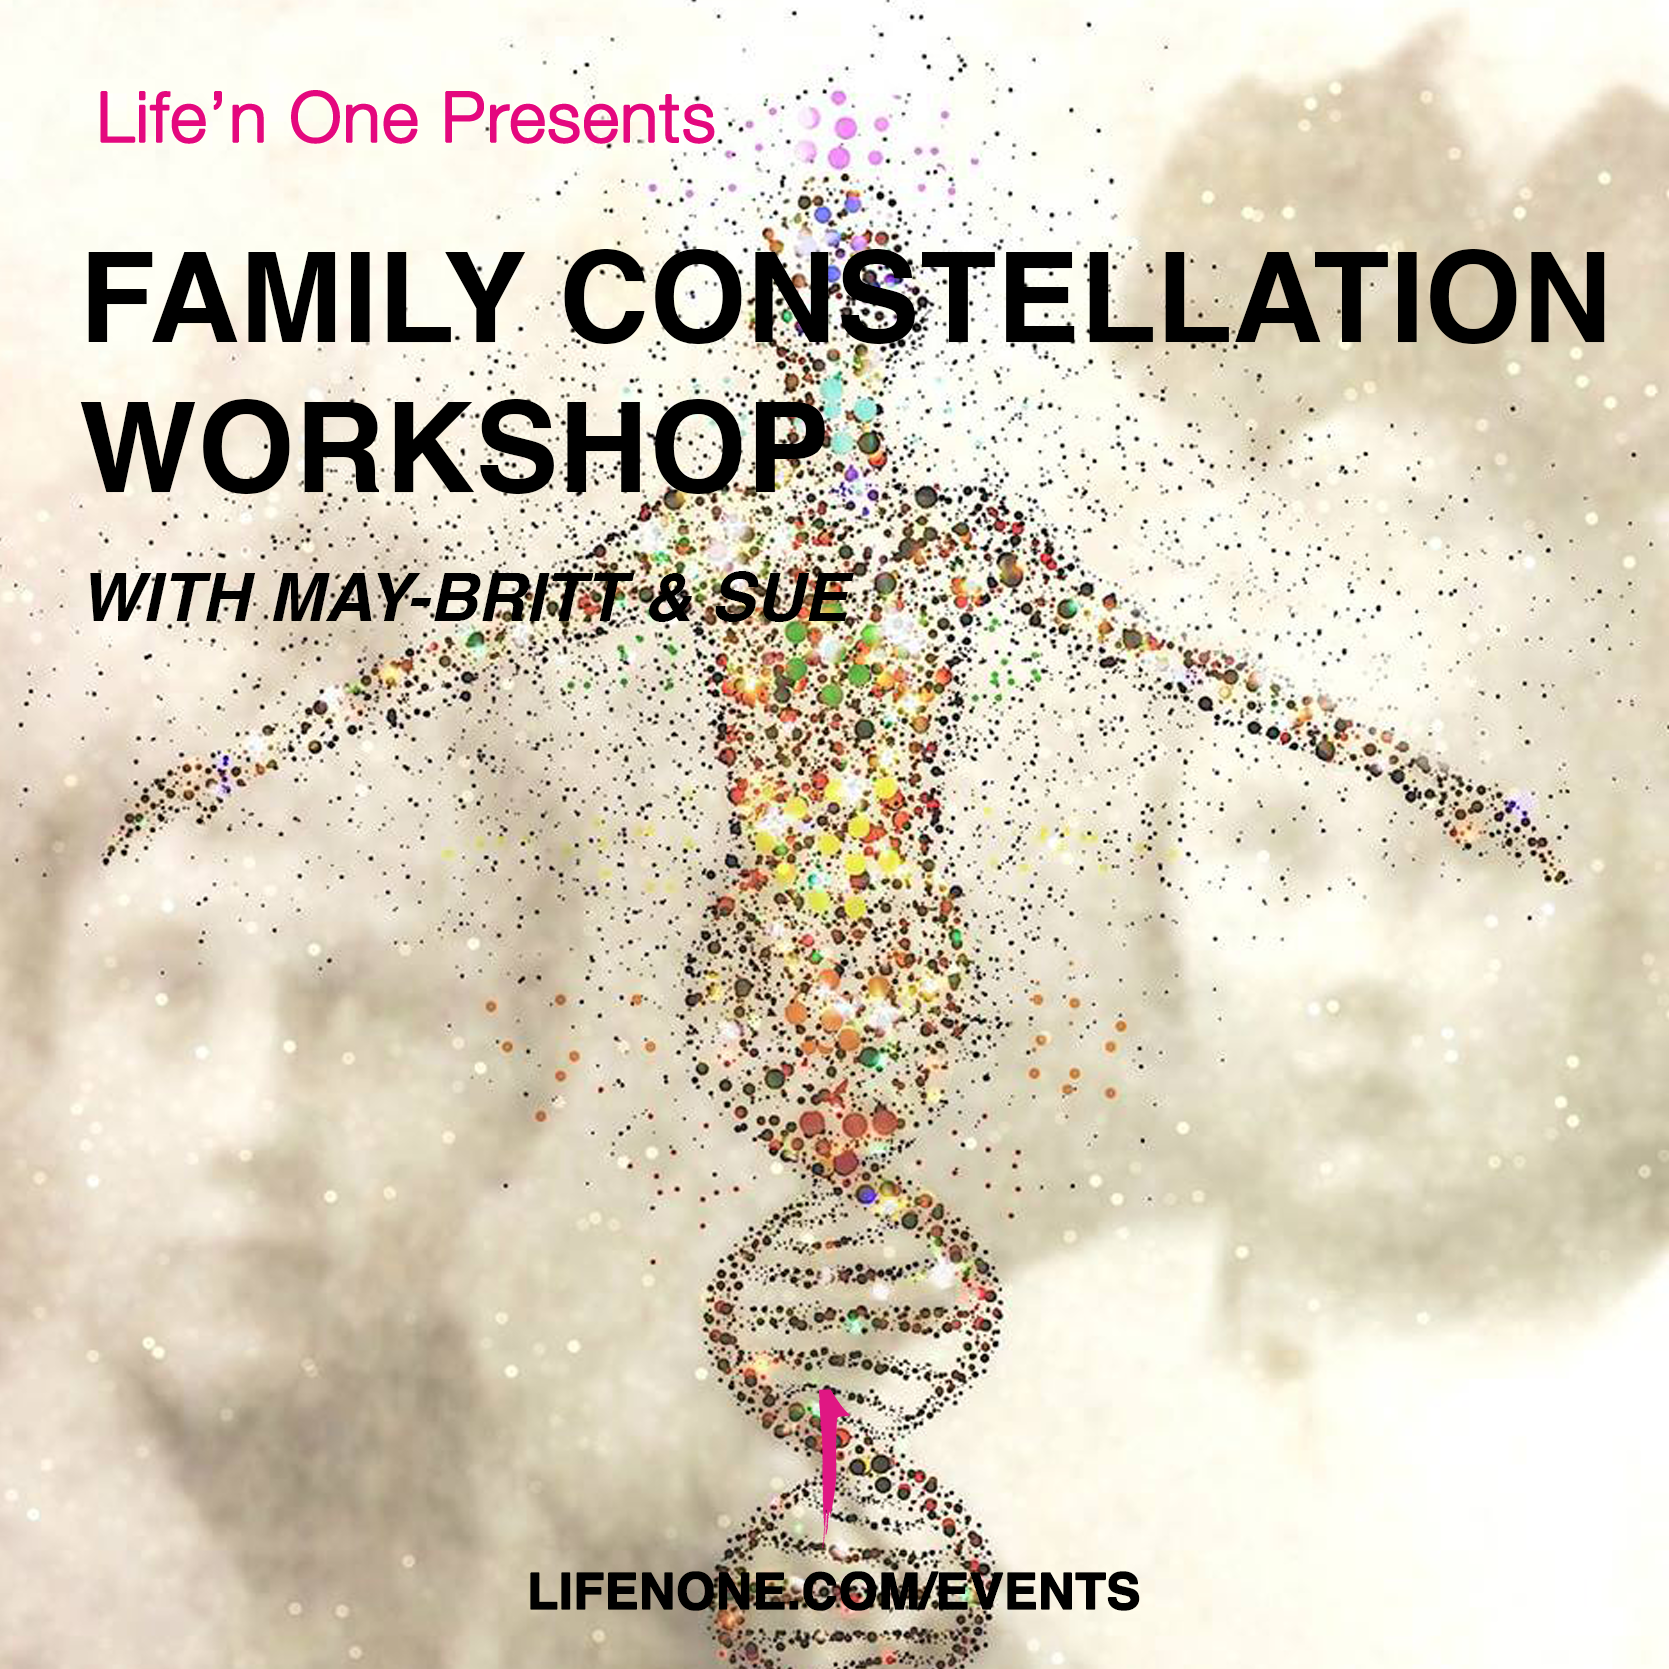 family contsellation workshop